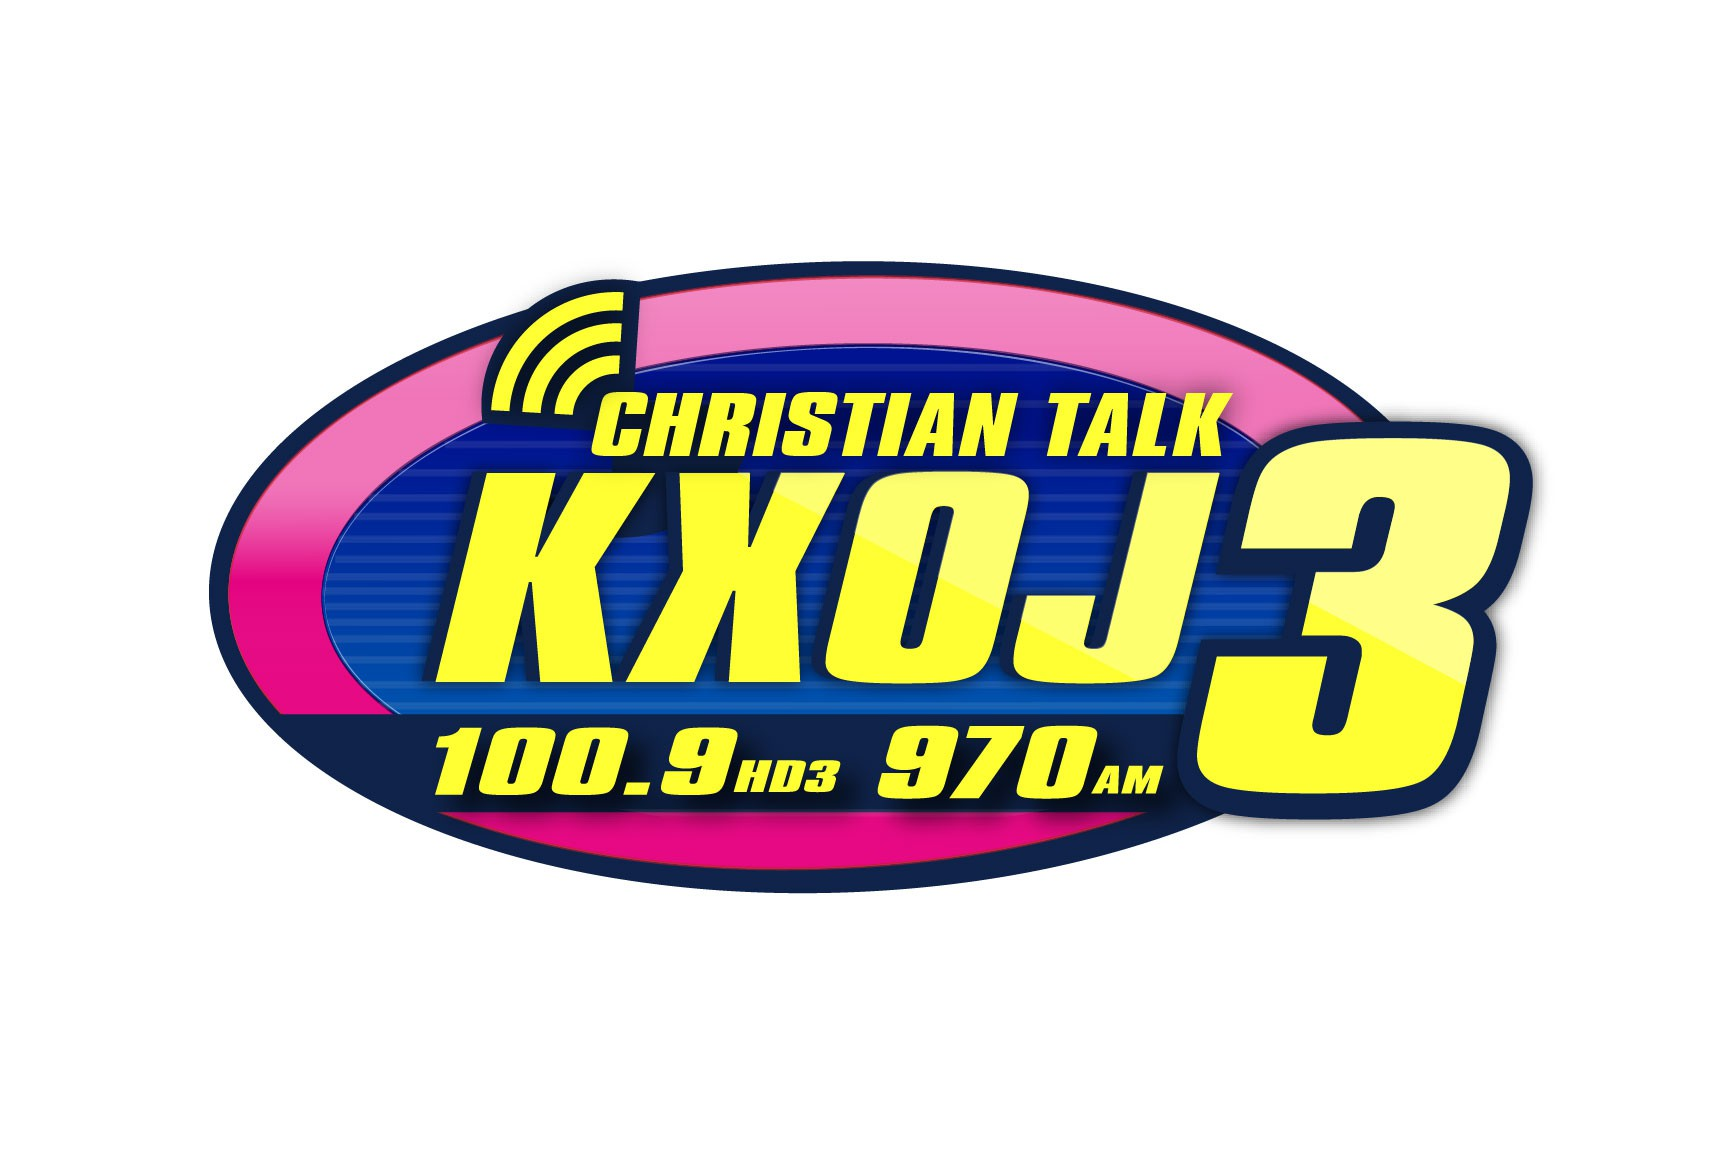 New version of existing logo for additional radio channel